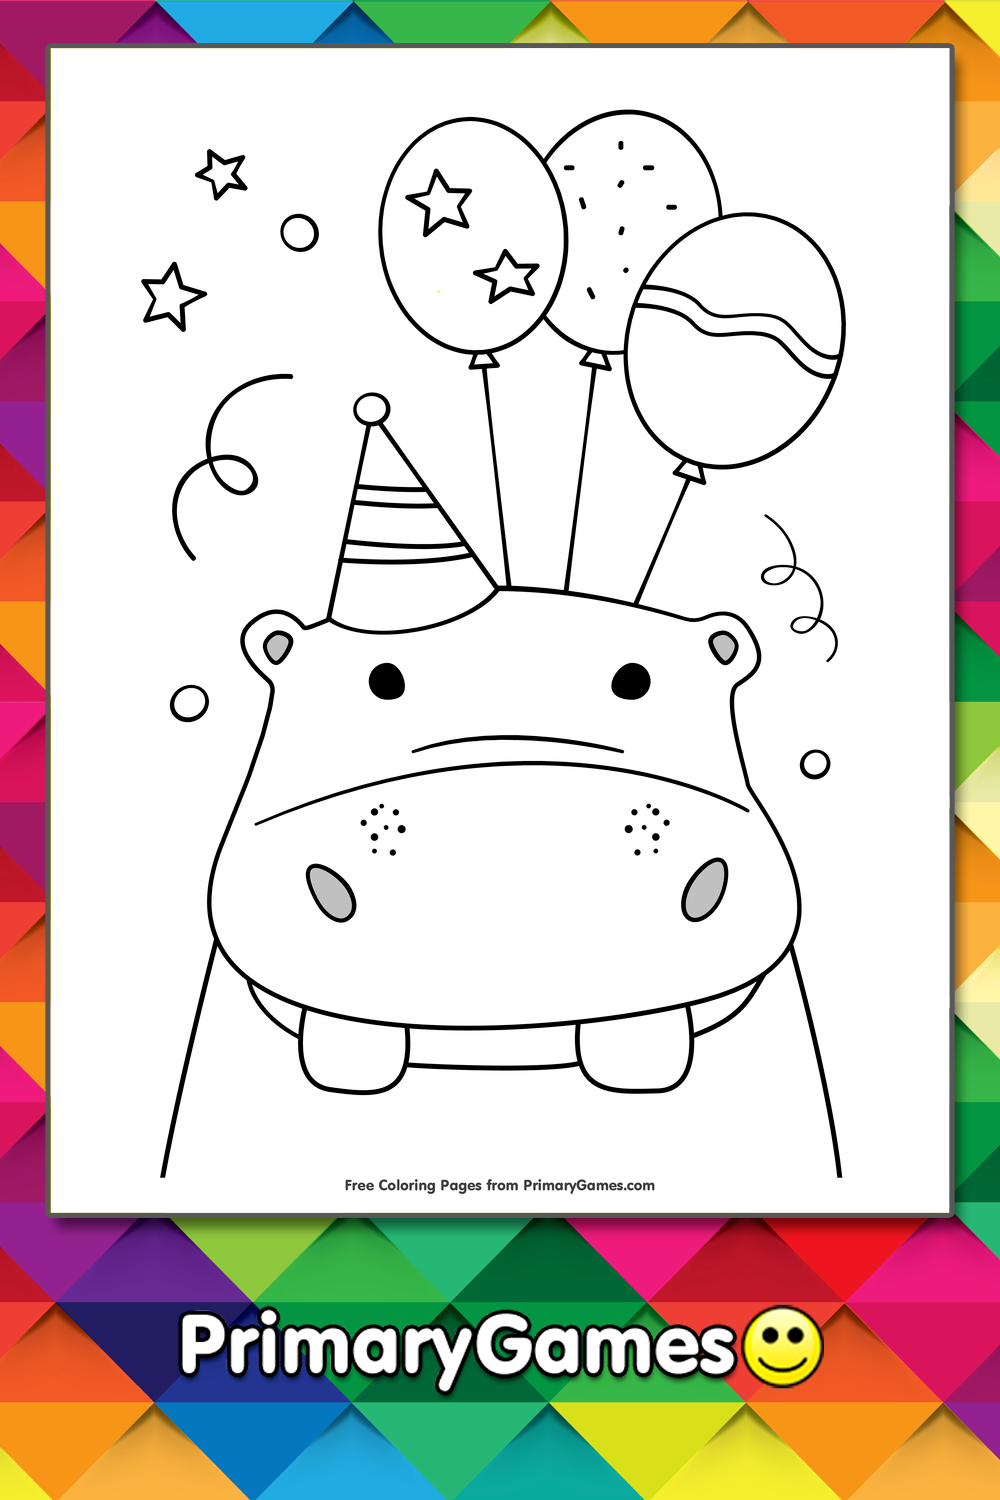 Birthday Hippo Holding Balloons Coloring Page Free Printable Ebook In 2020 Happy Birthday Coloring Pages Birthday Coloring Pages Coloring Pages